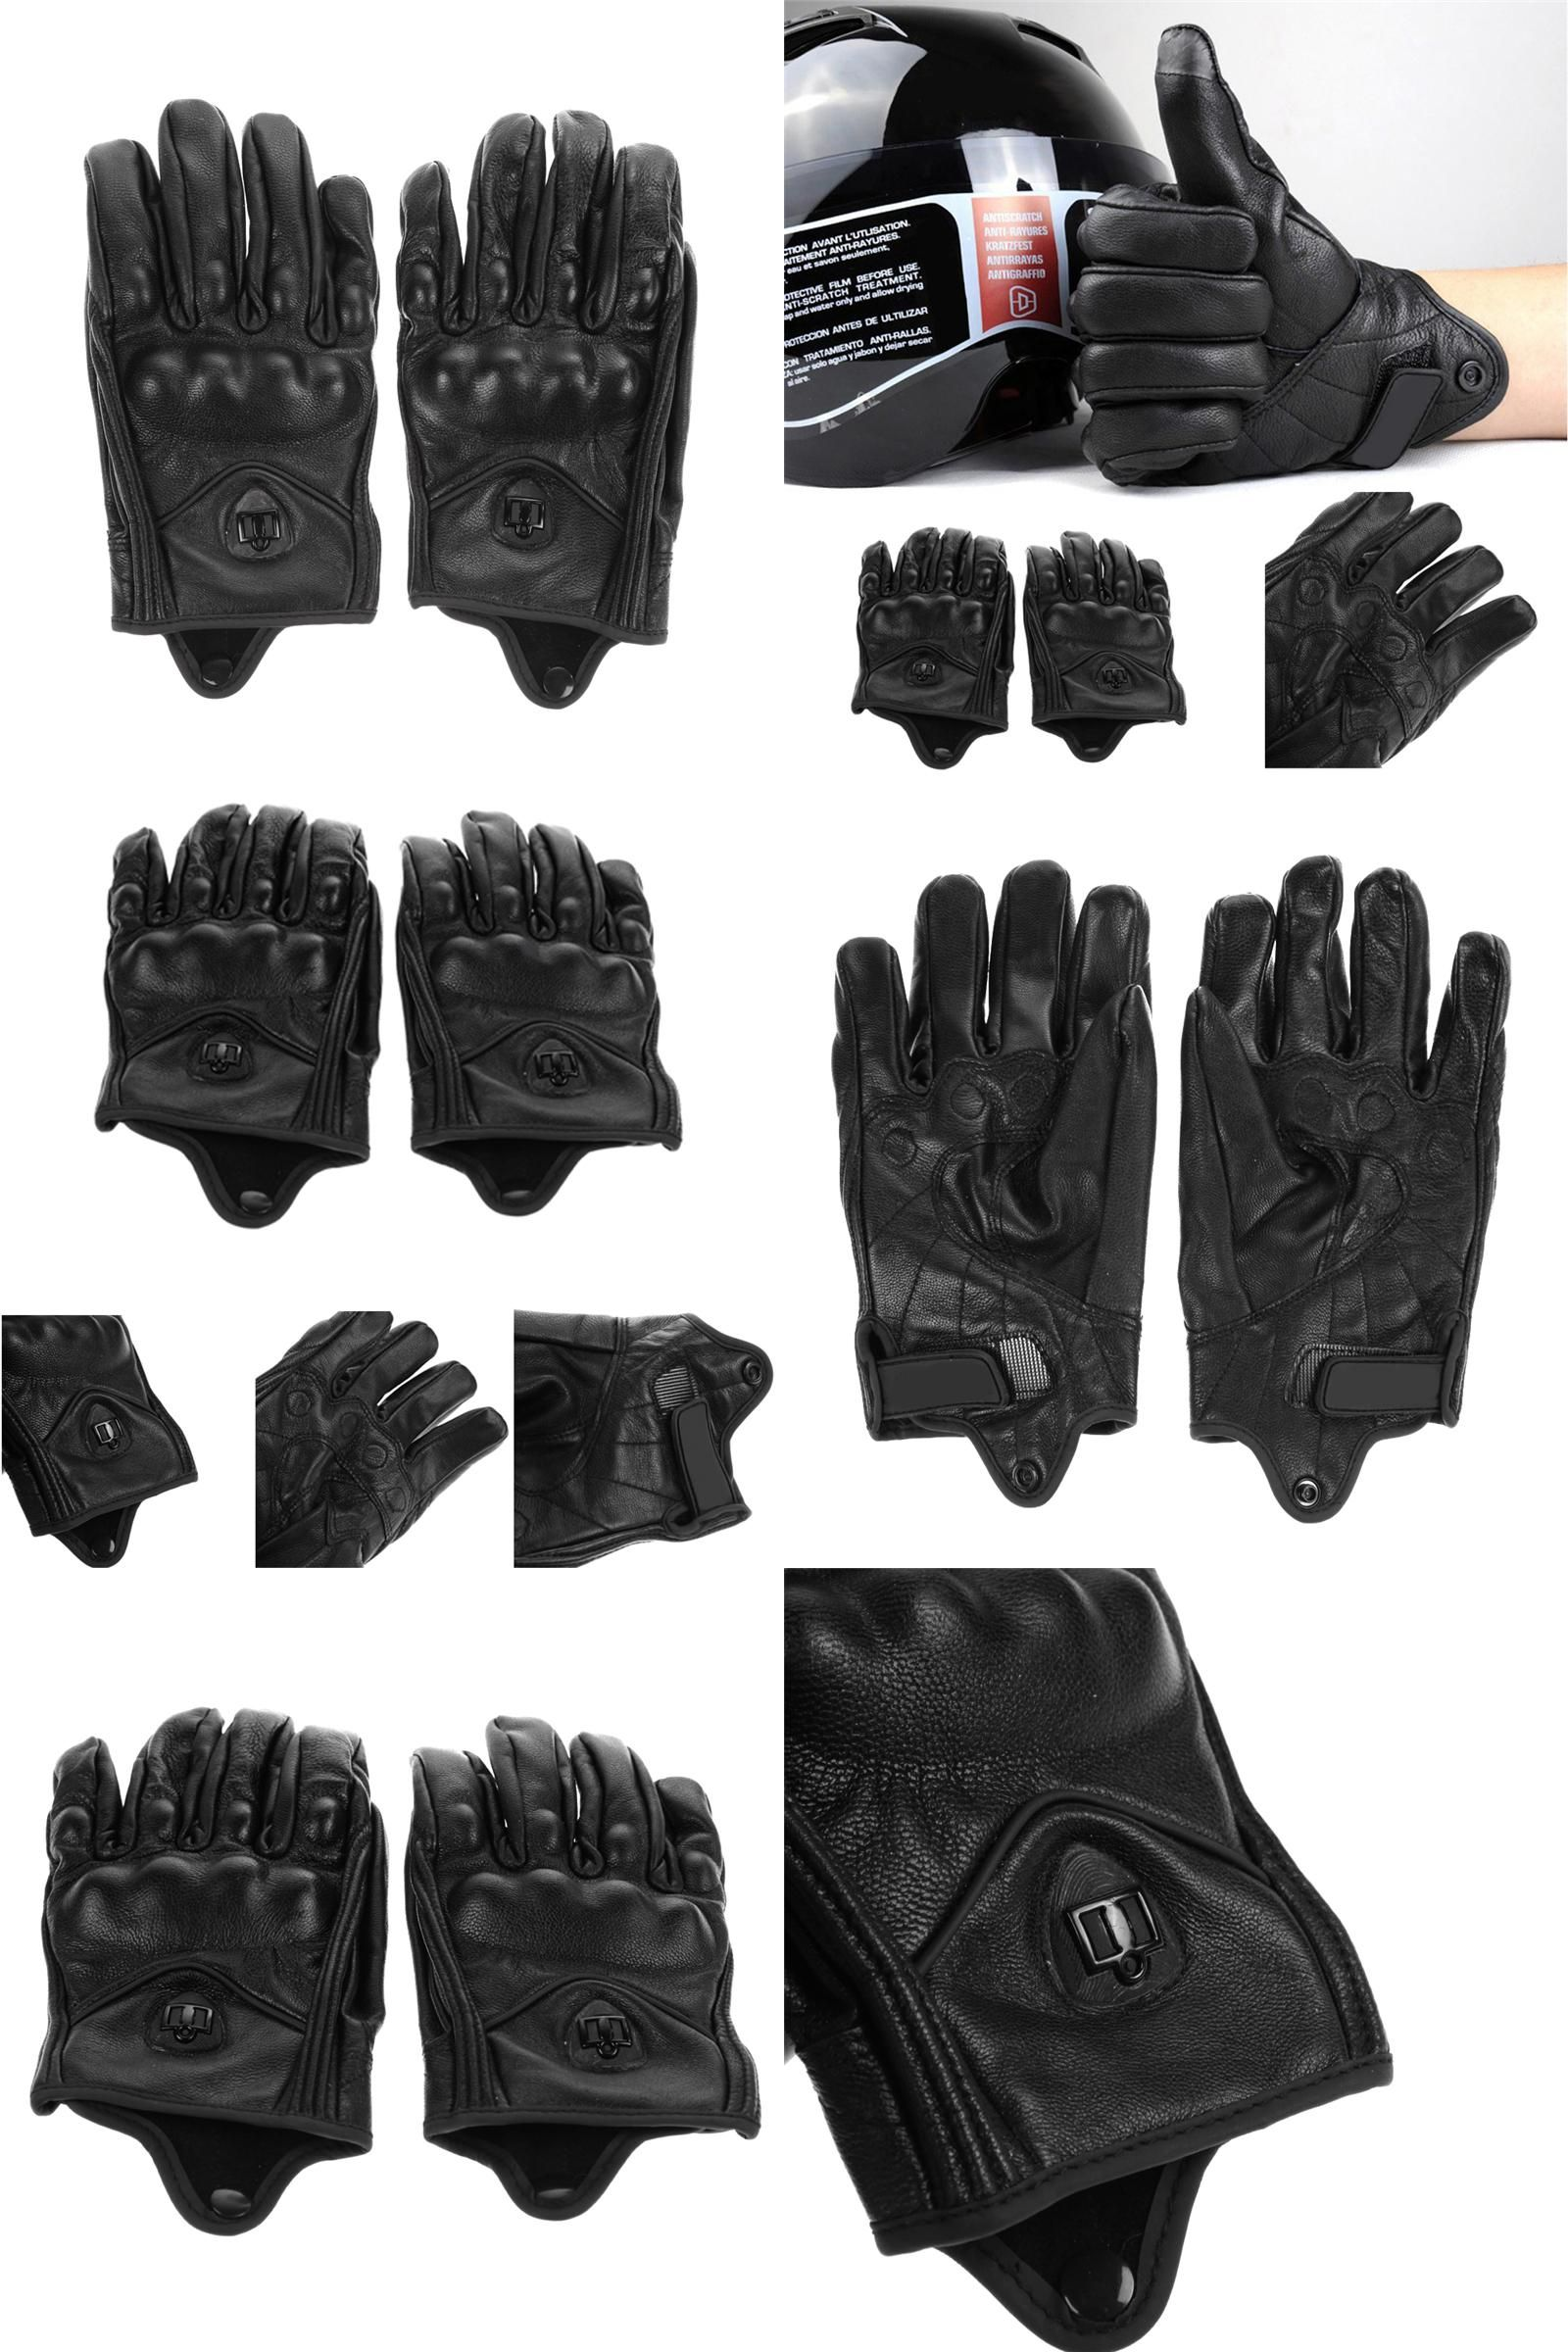 Motorcycle gloves xl -  Visit To Buy Stylish Leather Motorcycle Gloves Protective Armor Short Gloves M L